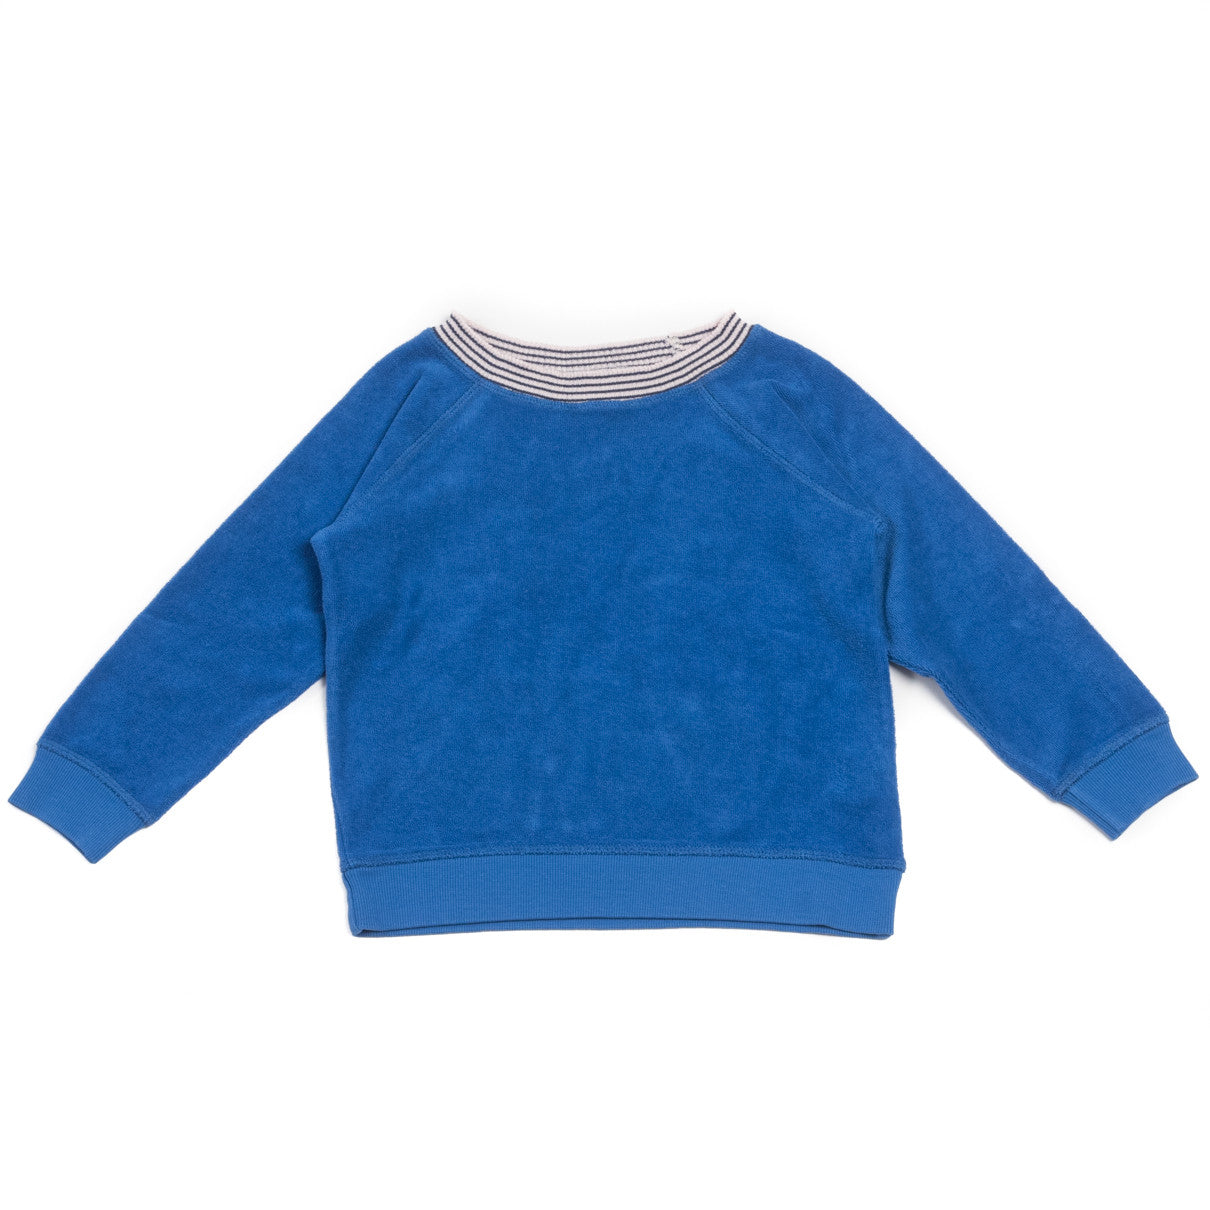 Bonton Blue Terry Sweatshirt - Ladida